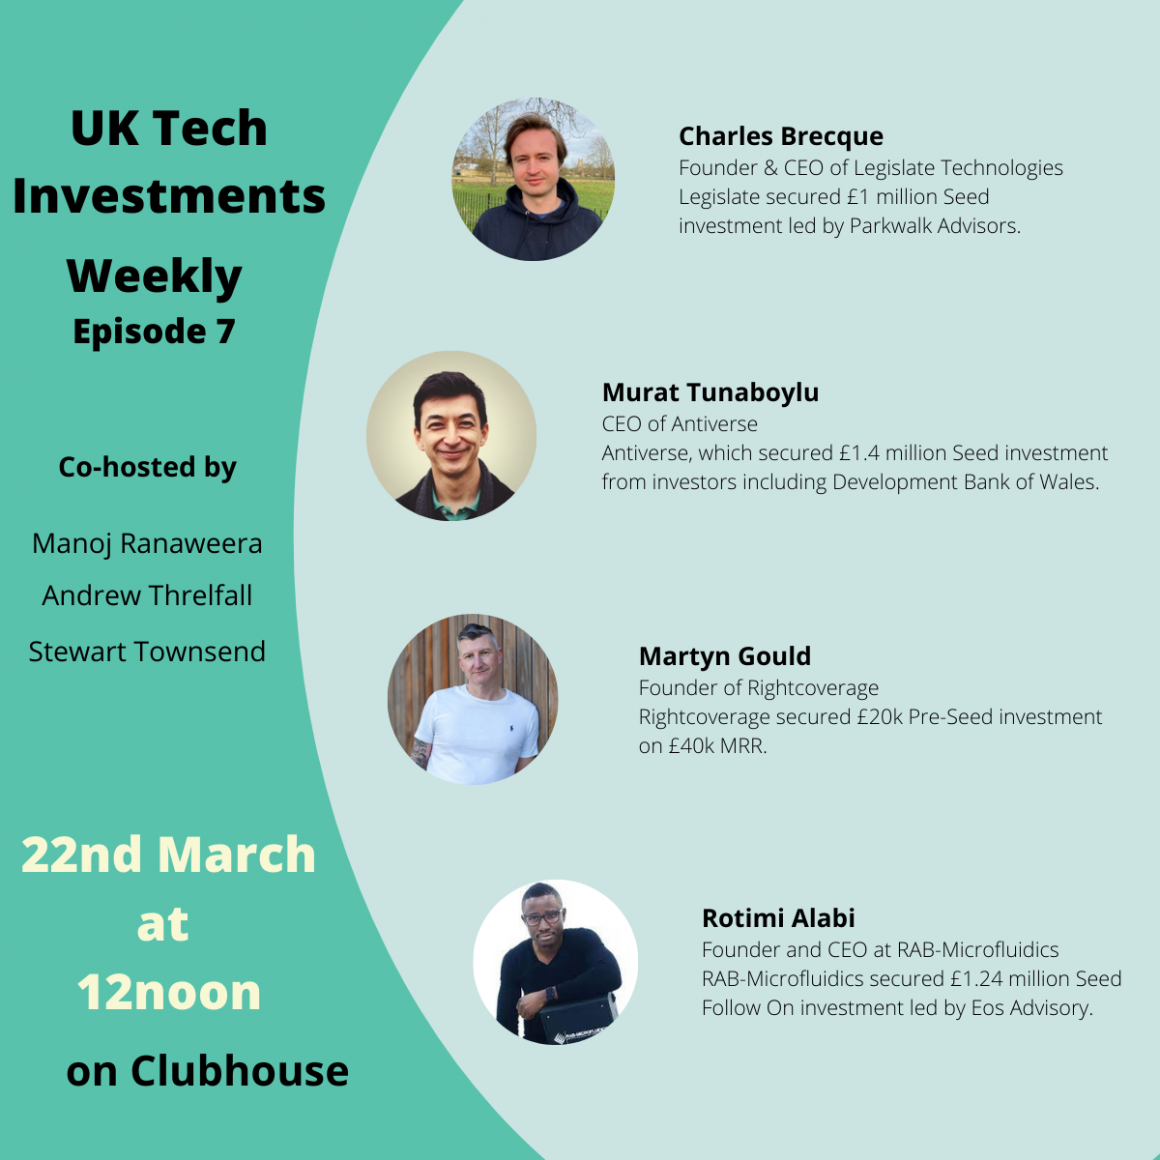 UK Tech Investment Weekly Episode 7